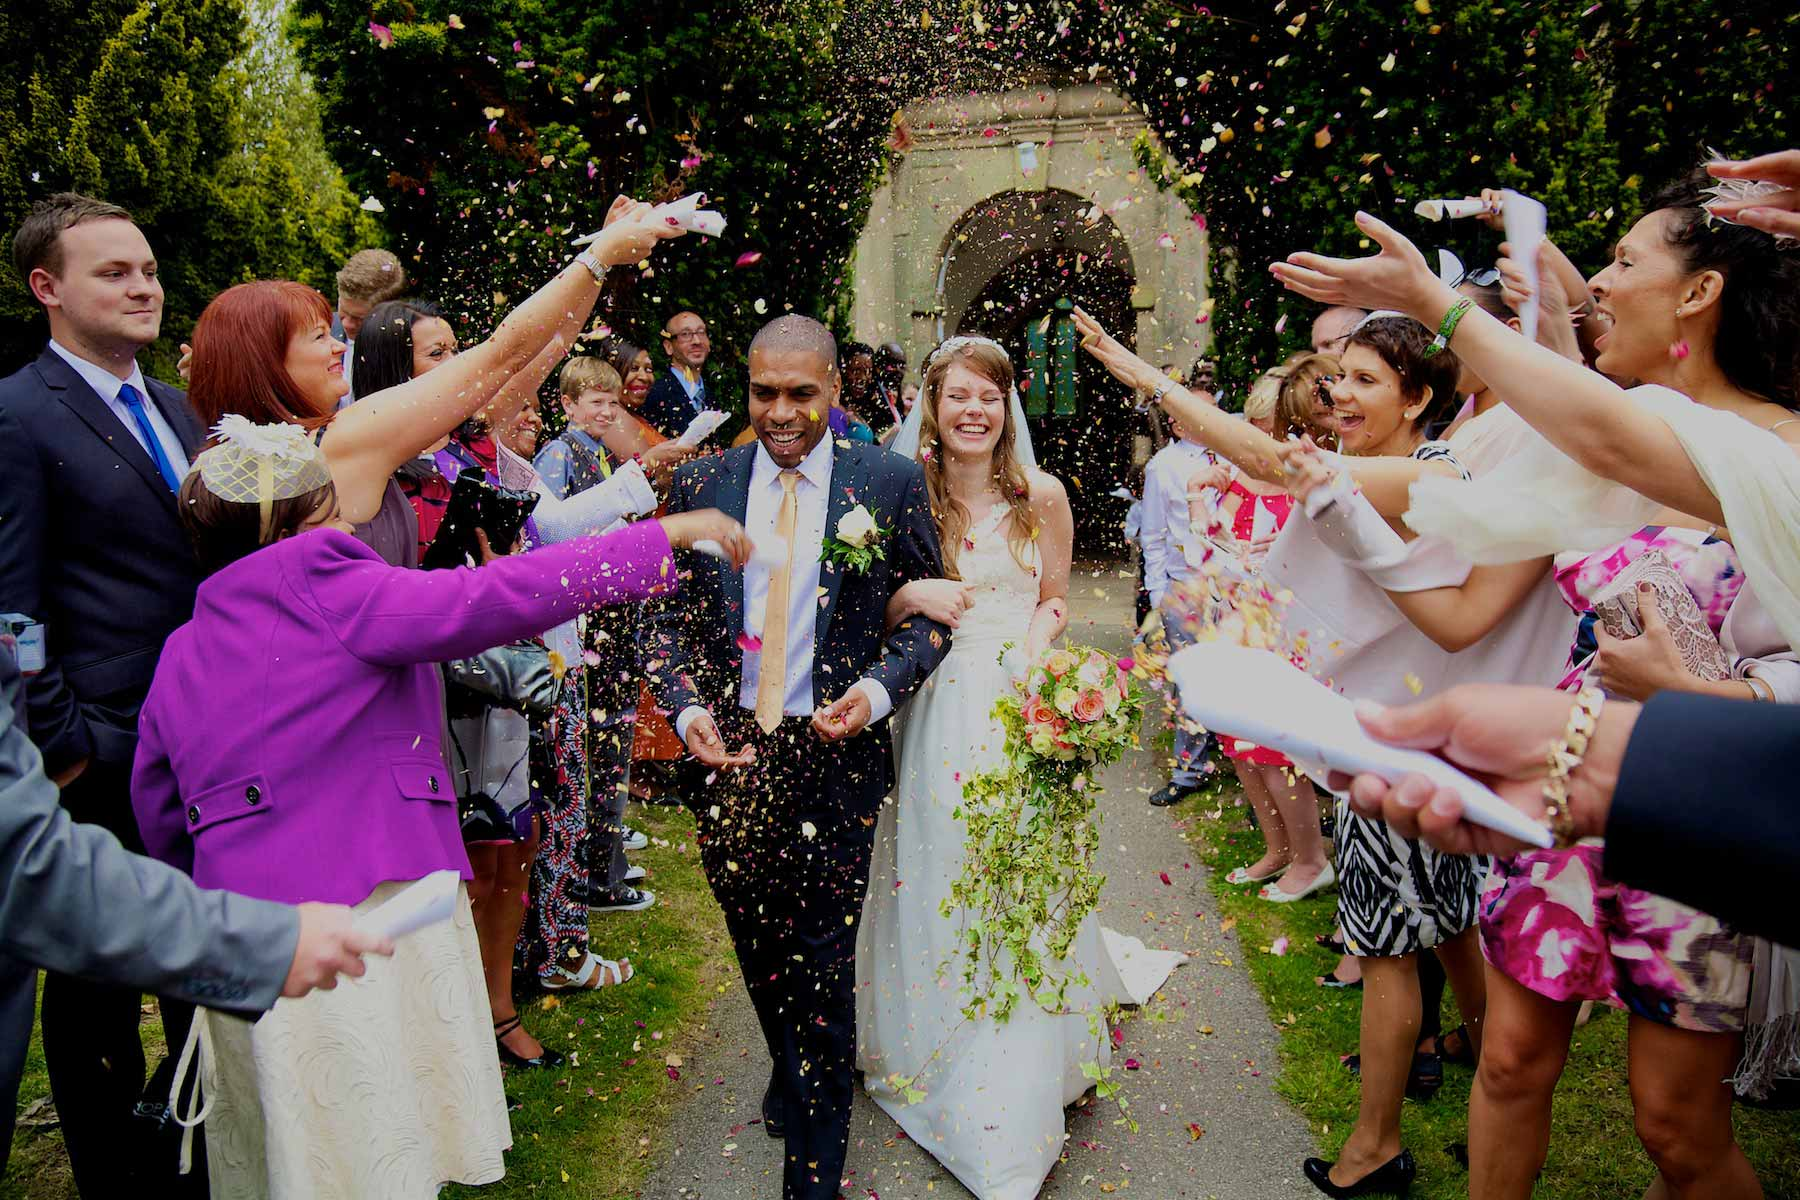 Bright and colourful - best confetti shot ever!